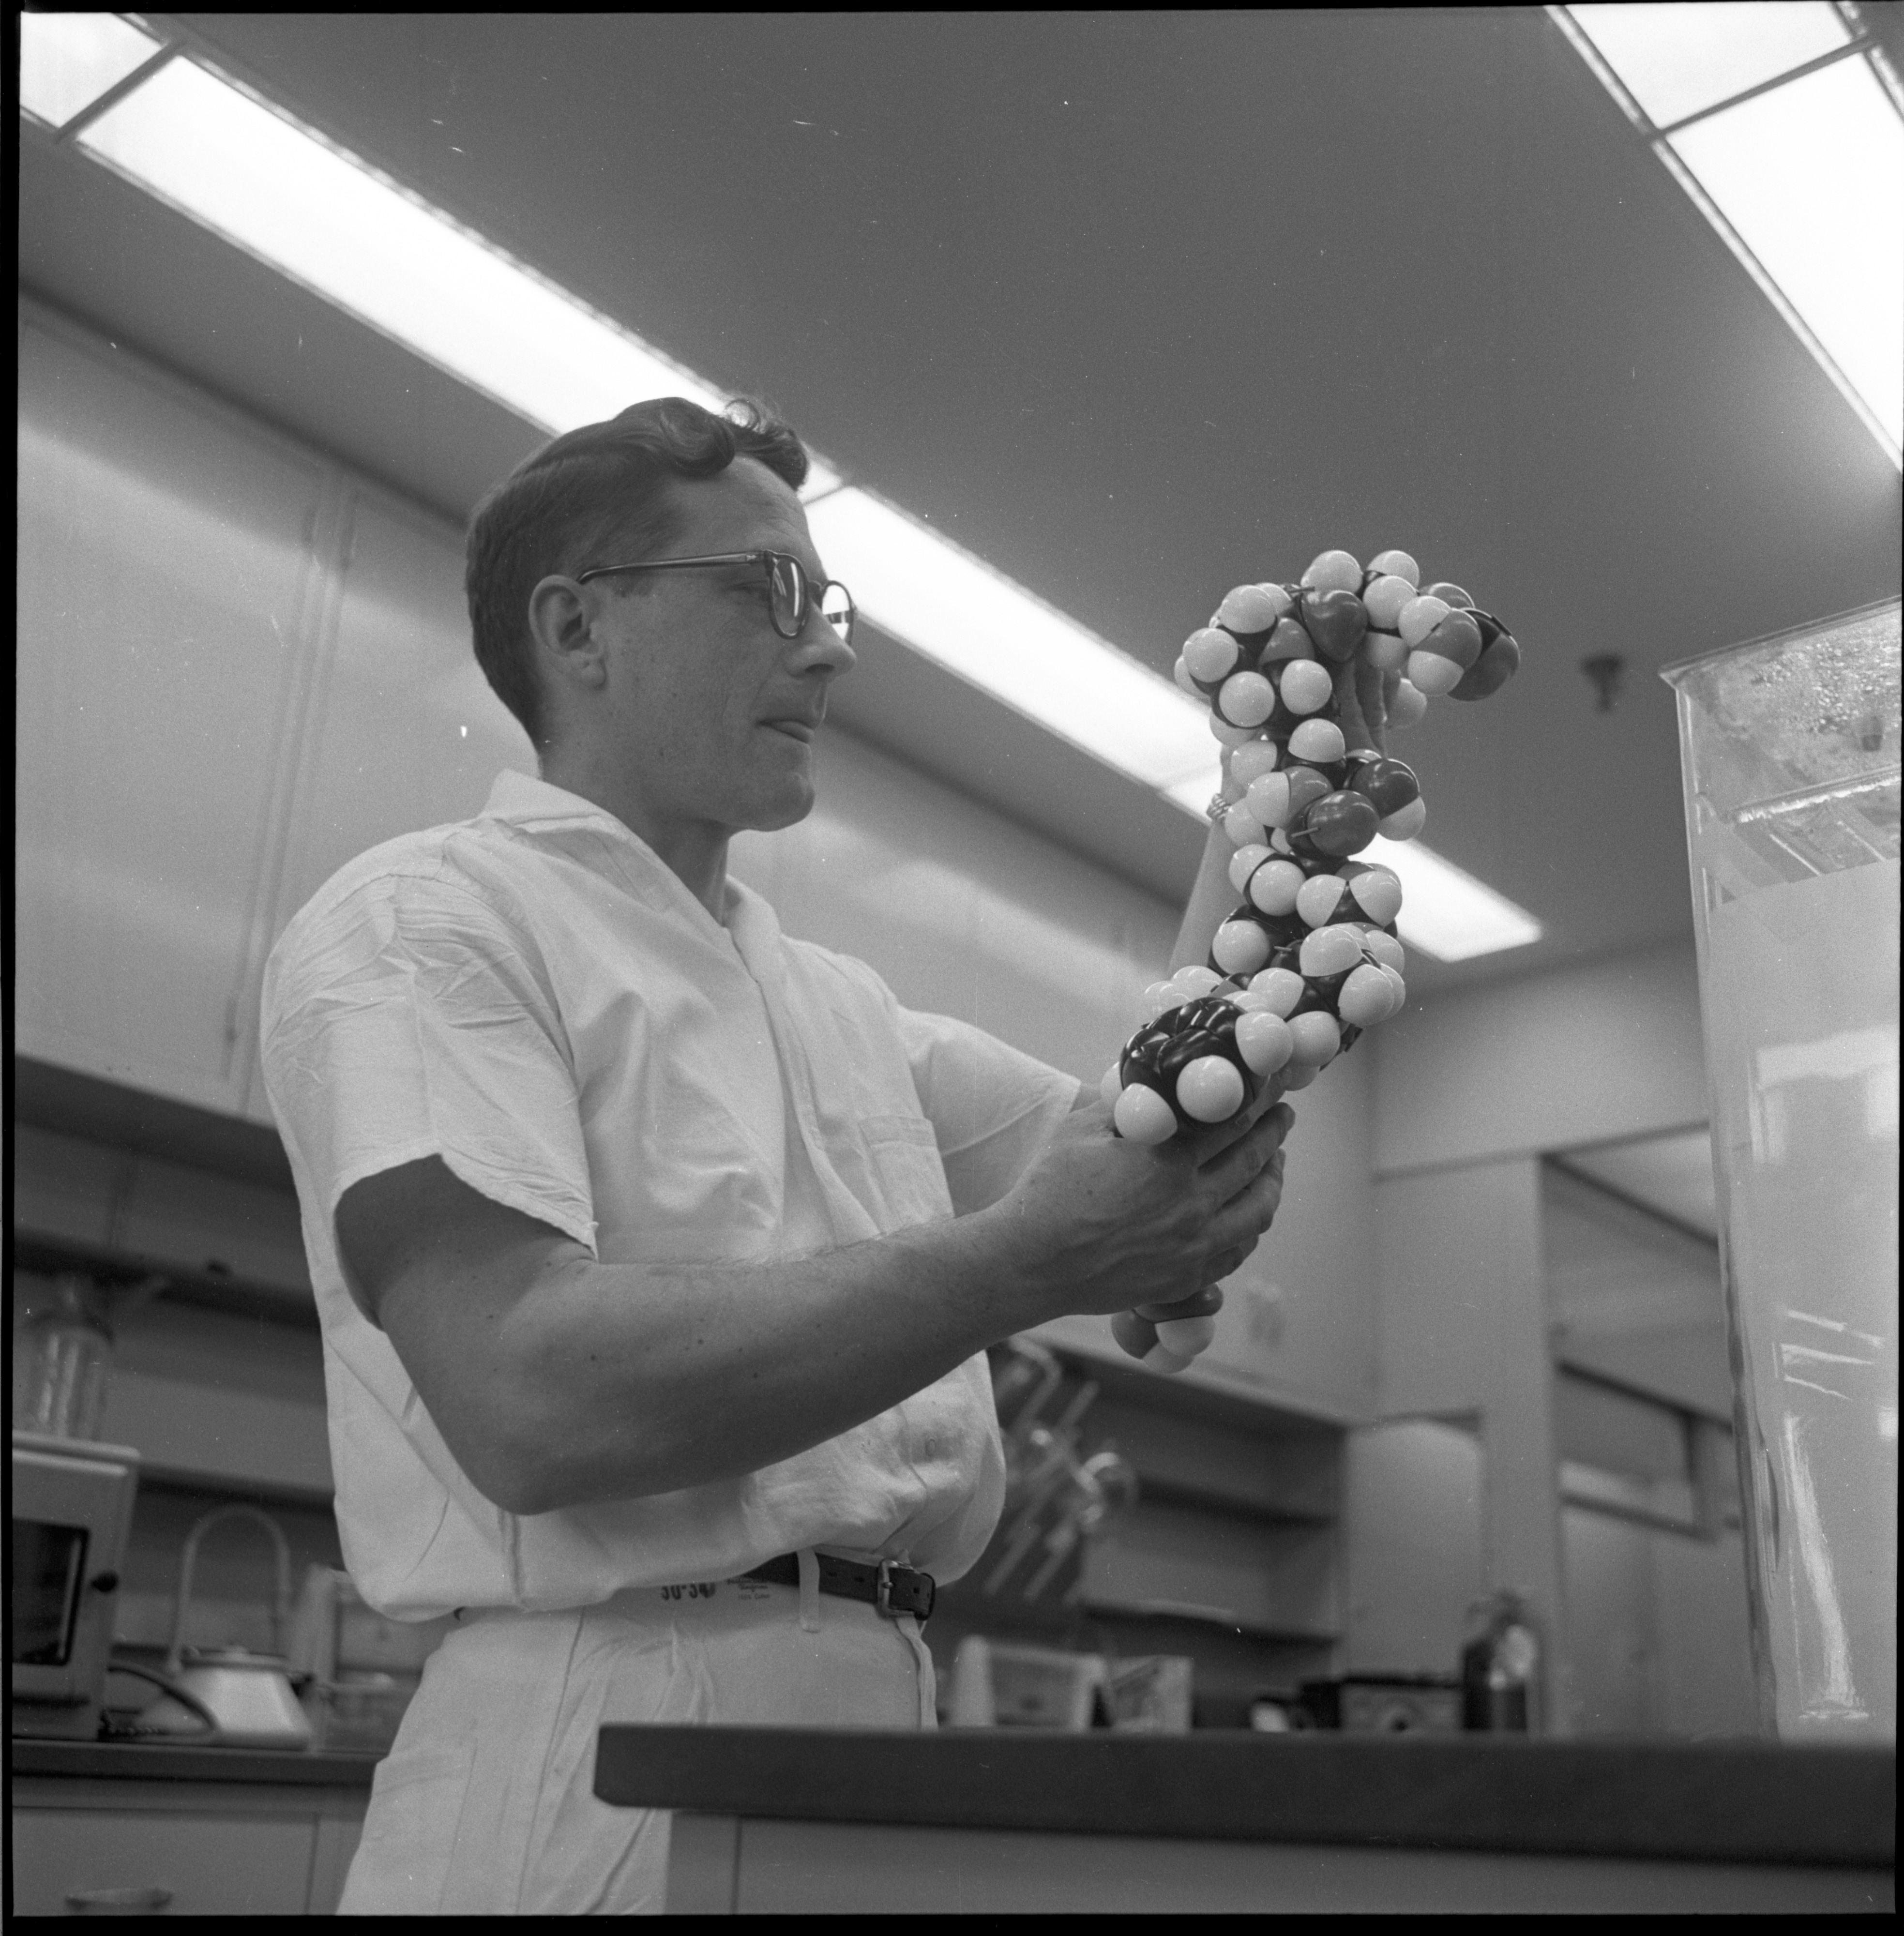 Dr. Ernest D. Nicolaides Holds A Molecular Model Of Kallidin II In A Parke Davis Research Laboratory, May 1962 image